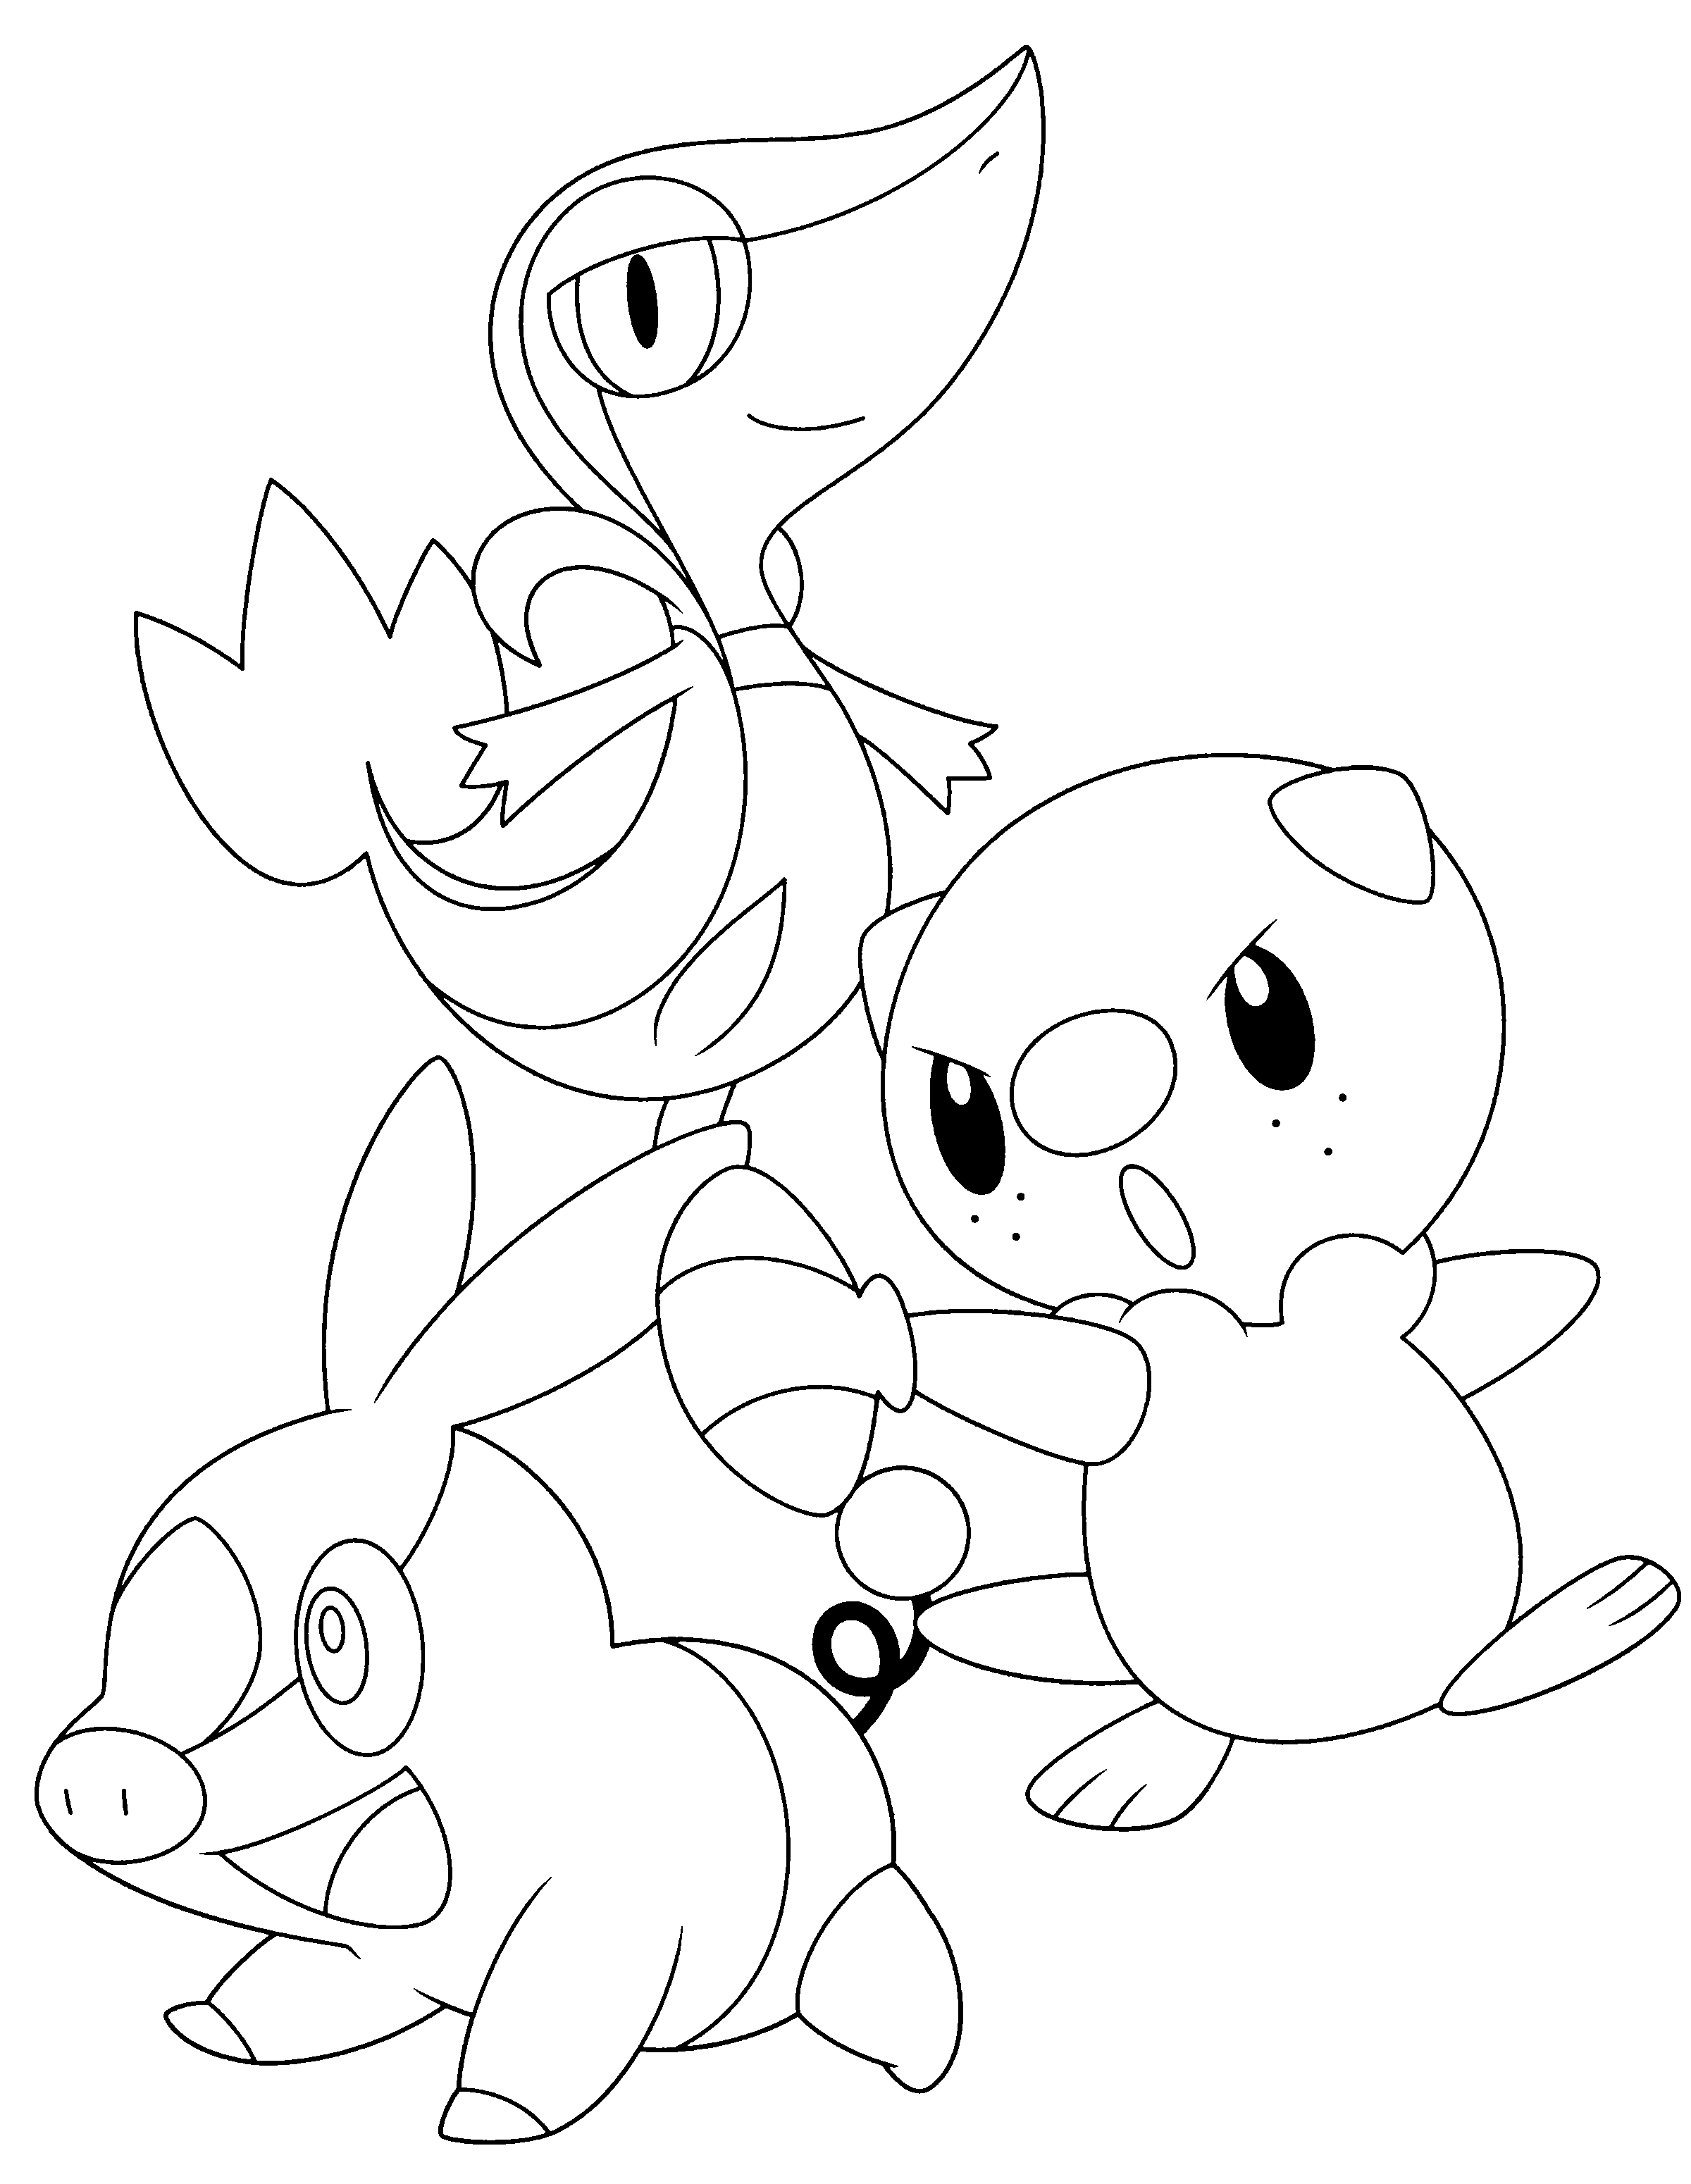 Pokemon kanto coloring pages - Coloring Pages Pokemon Oshawott Snivy And Tepig Google Search